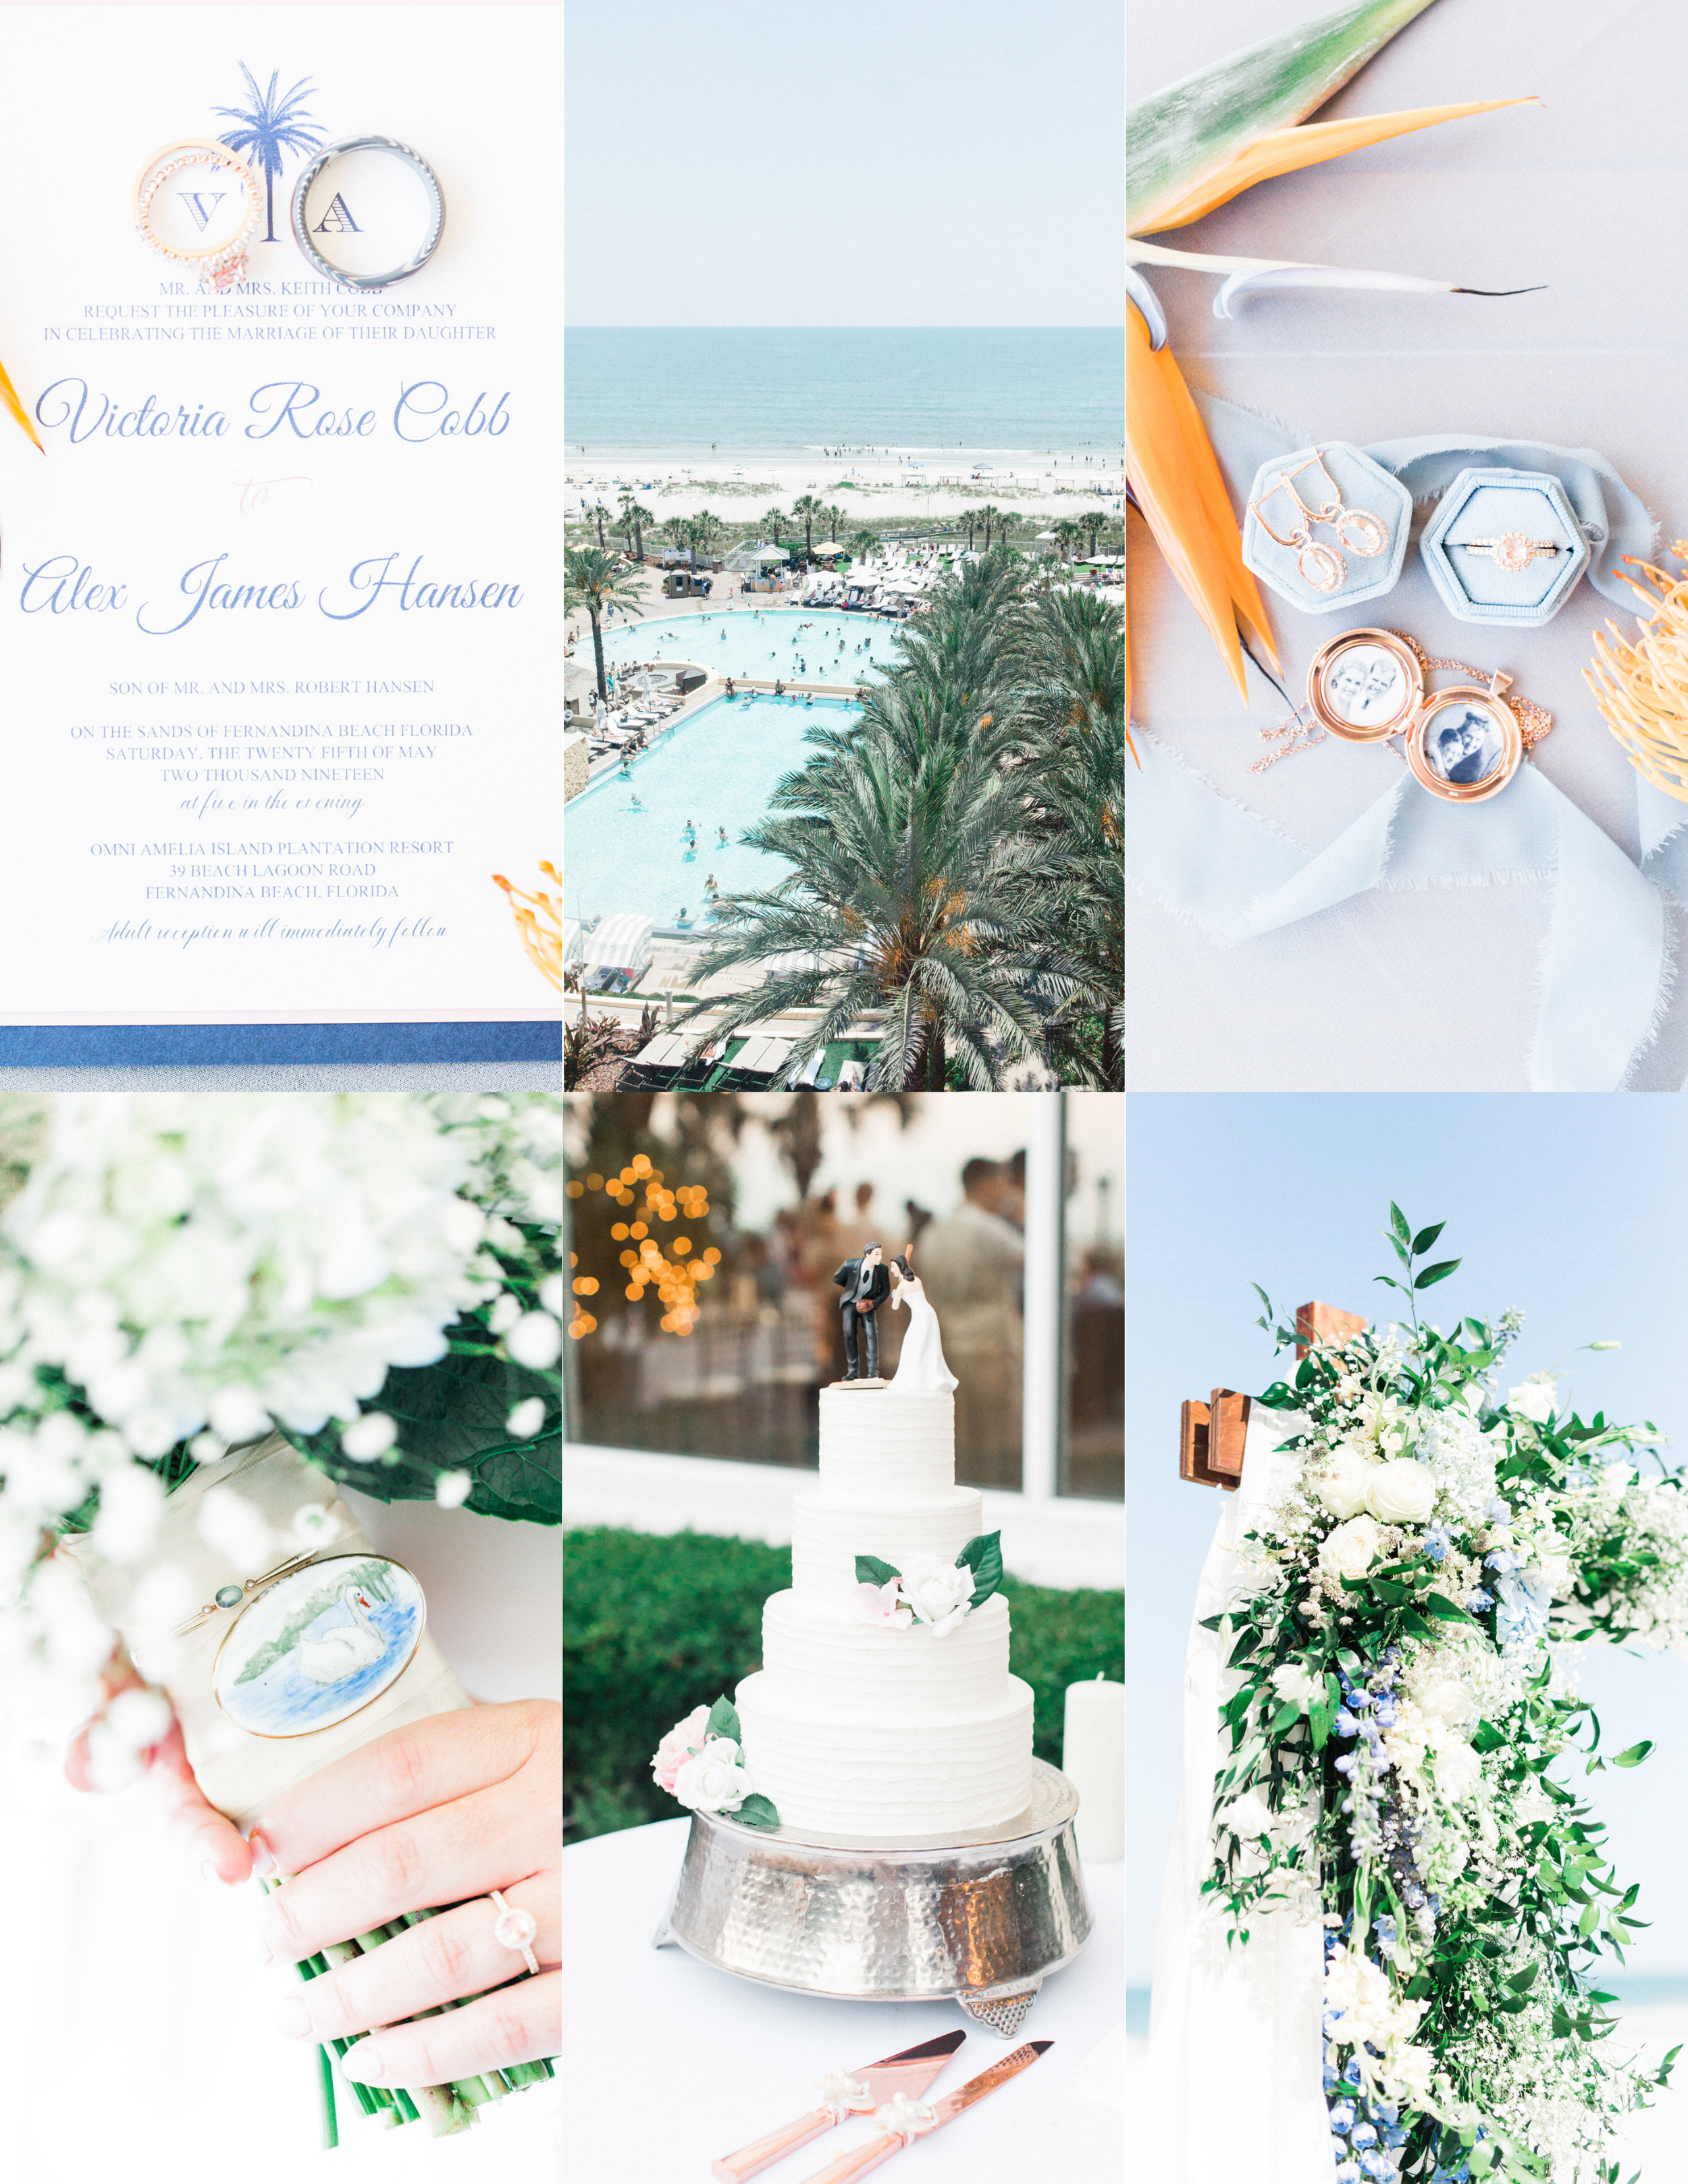 omni amelia island resort wedding with all the details, cake, flowers, invitations and more